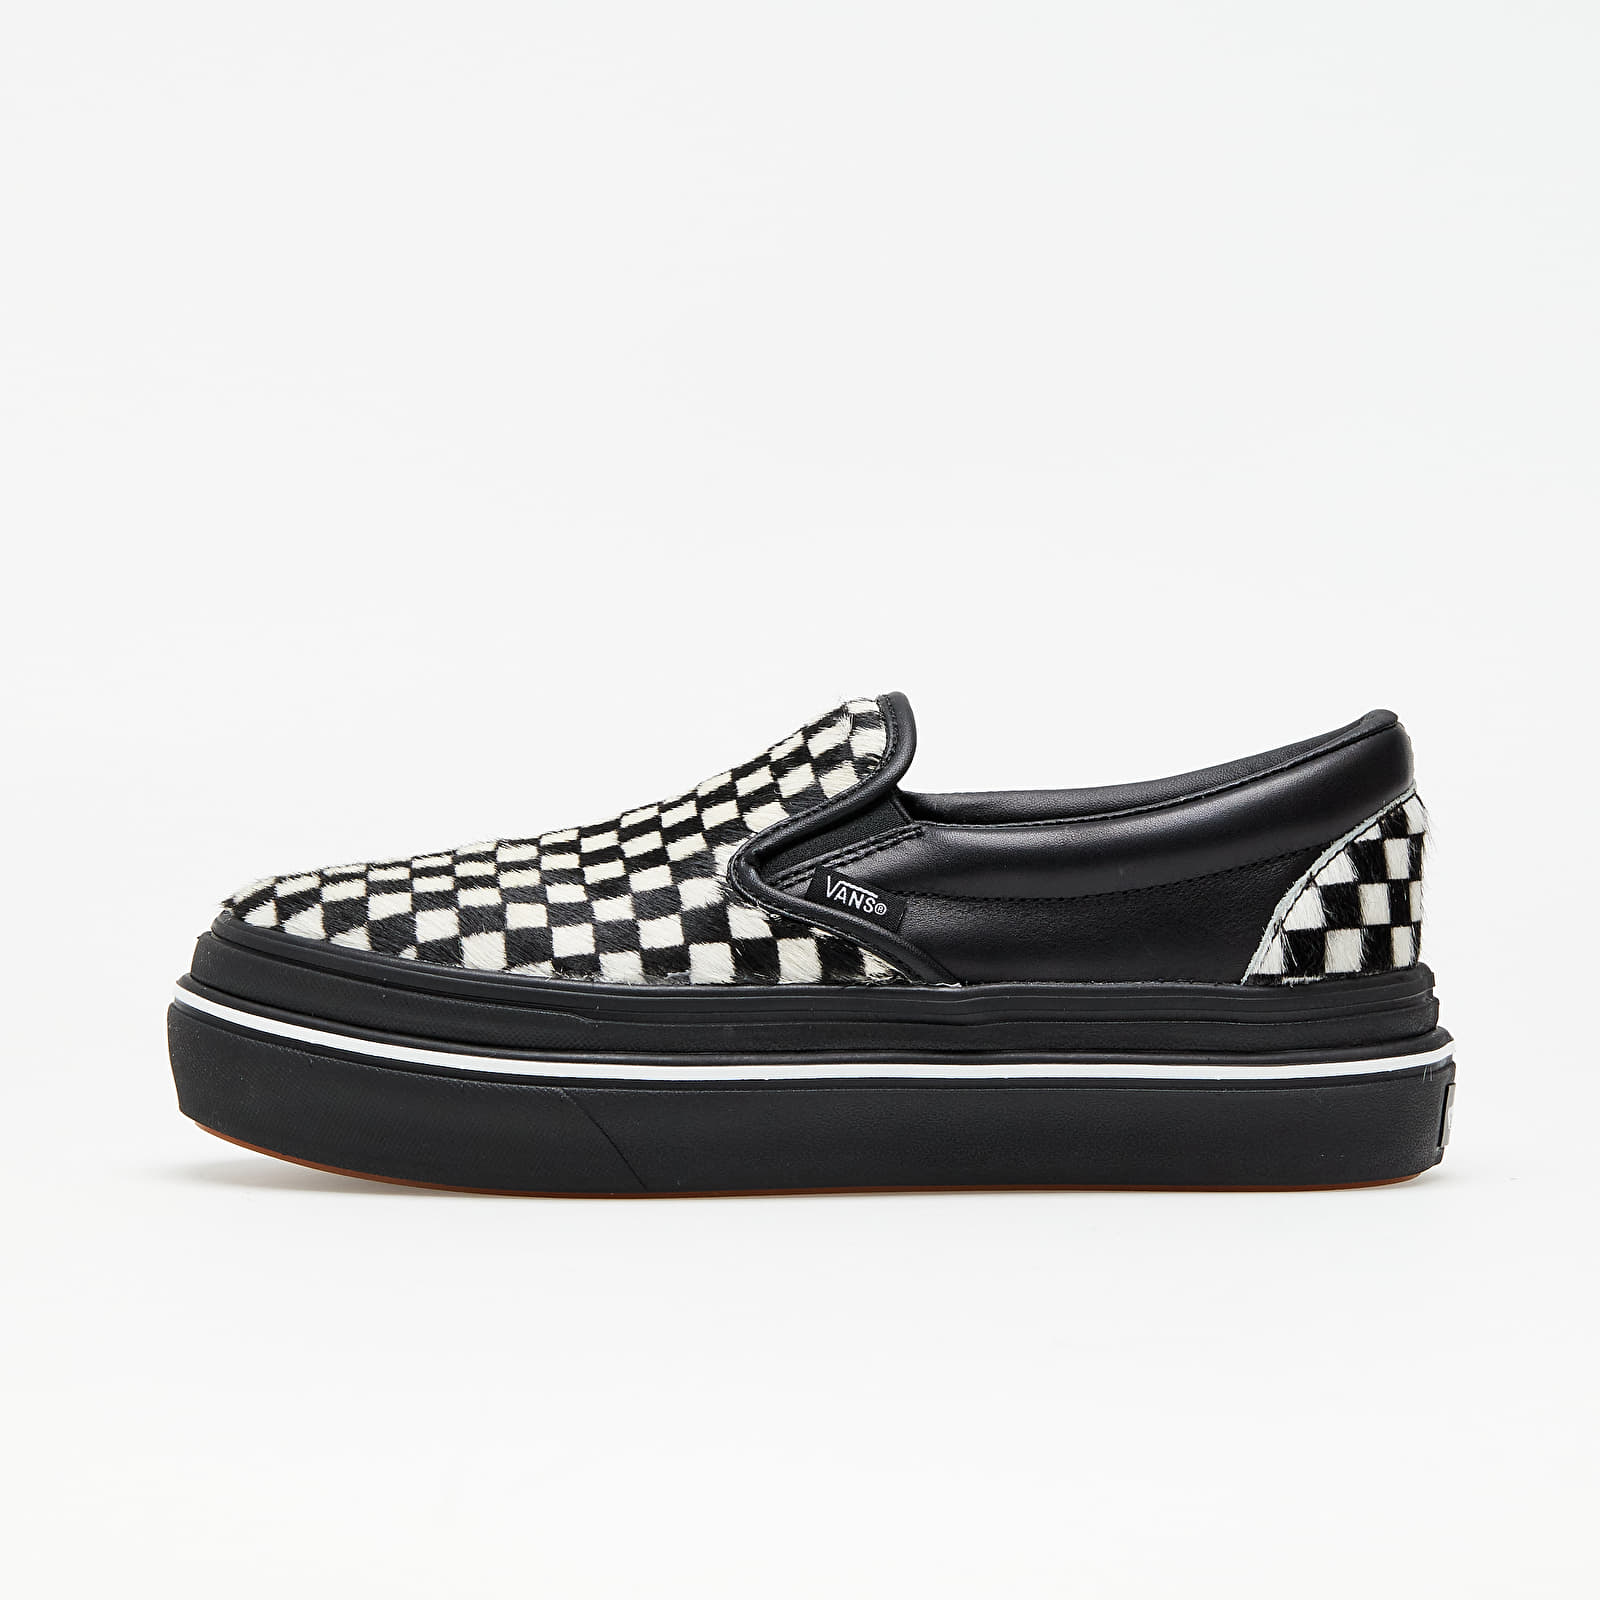 Vans Super ComfyCush Slip-On (Fury) Black/ White EUR 38